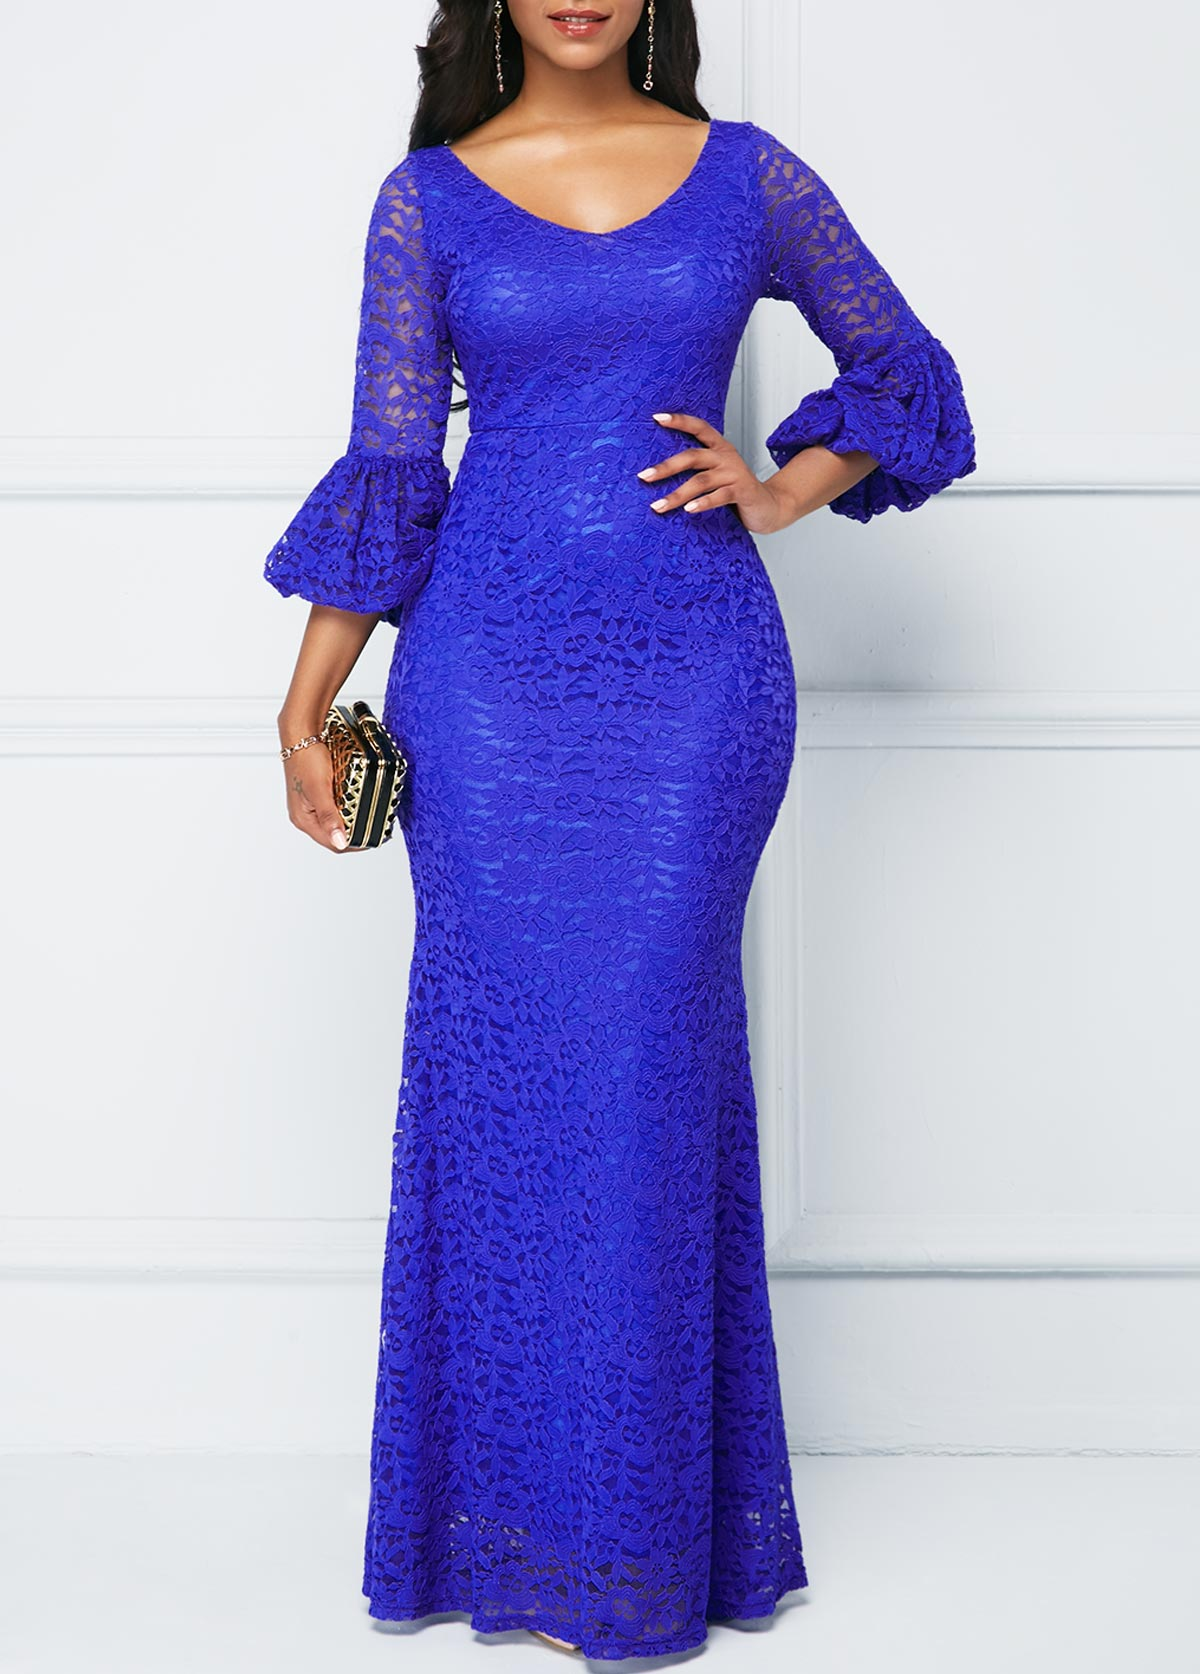 V Neck Royal Blue Lace Dress